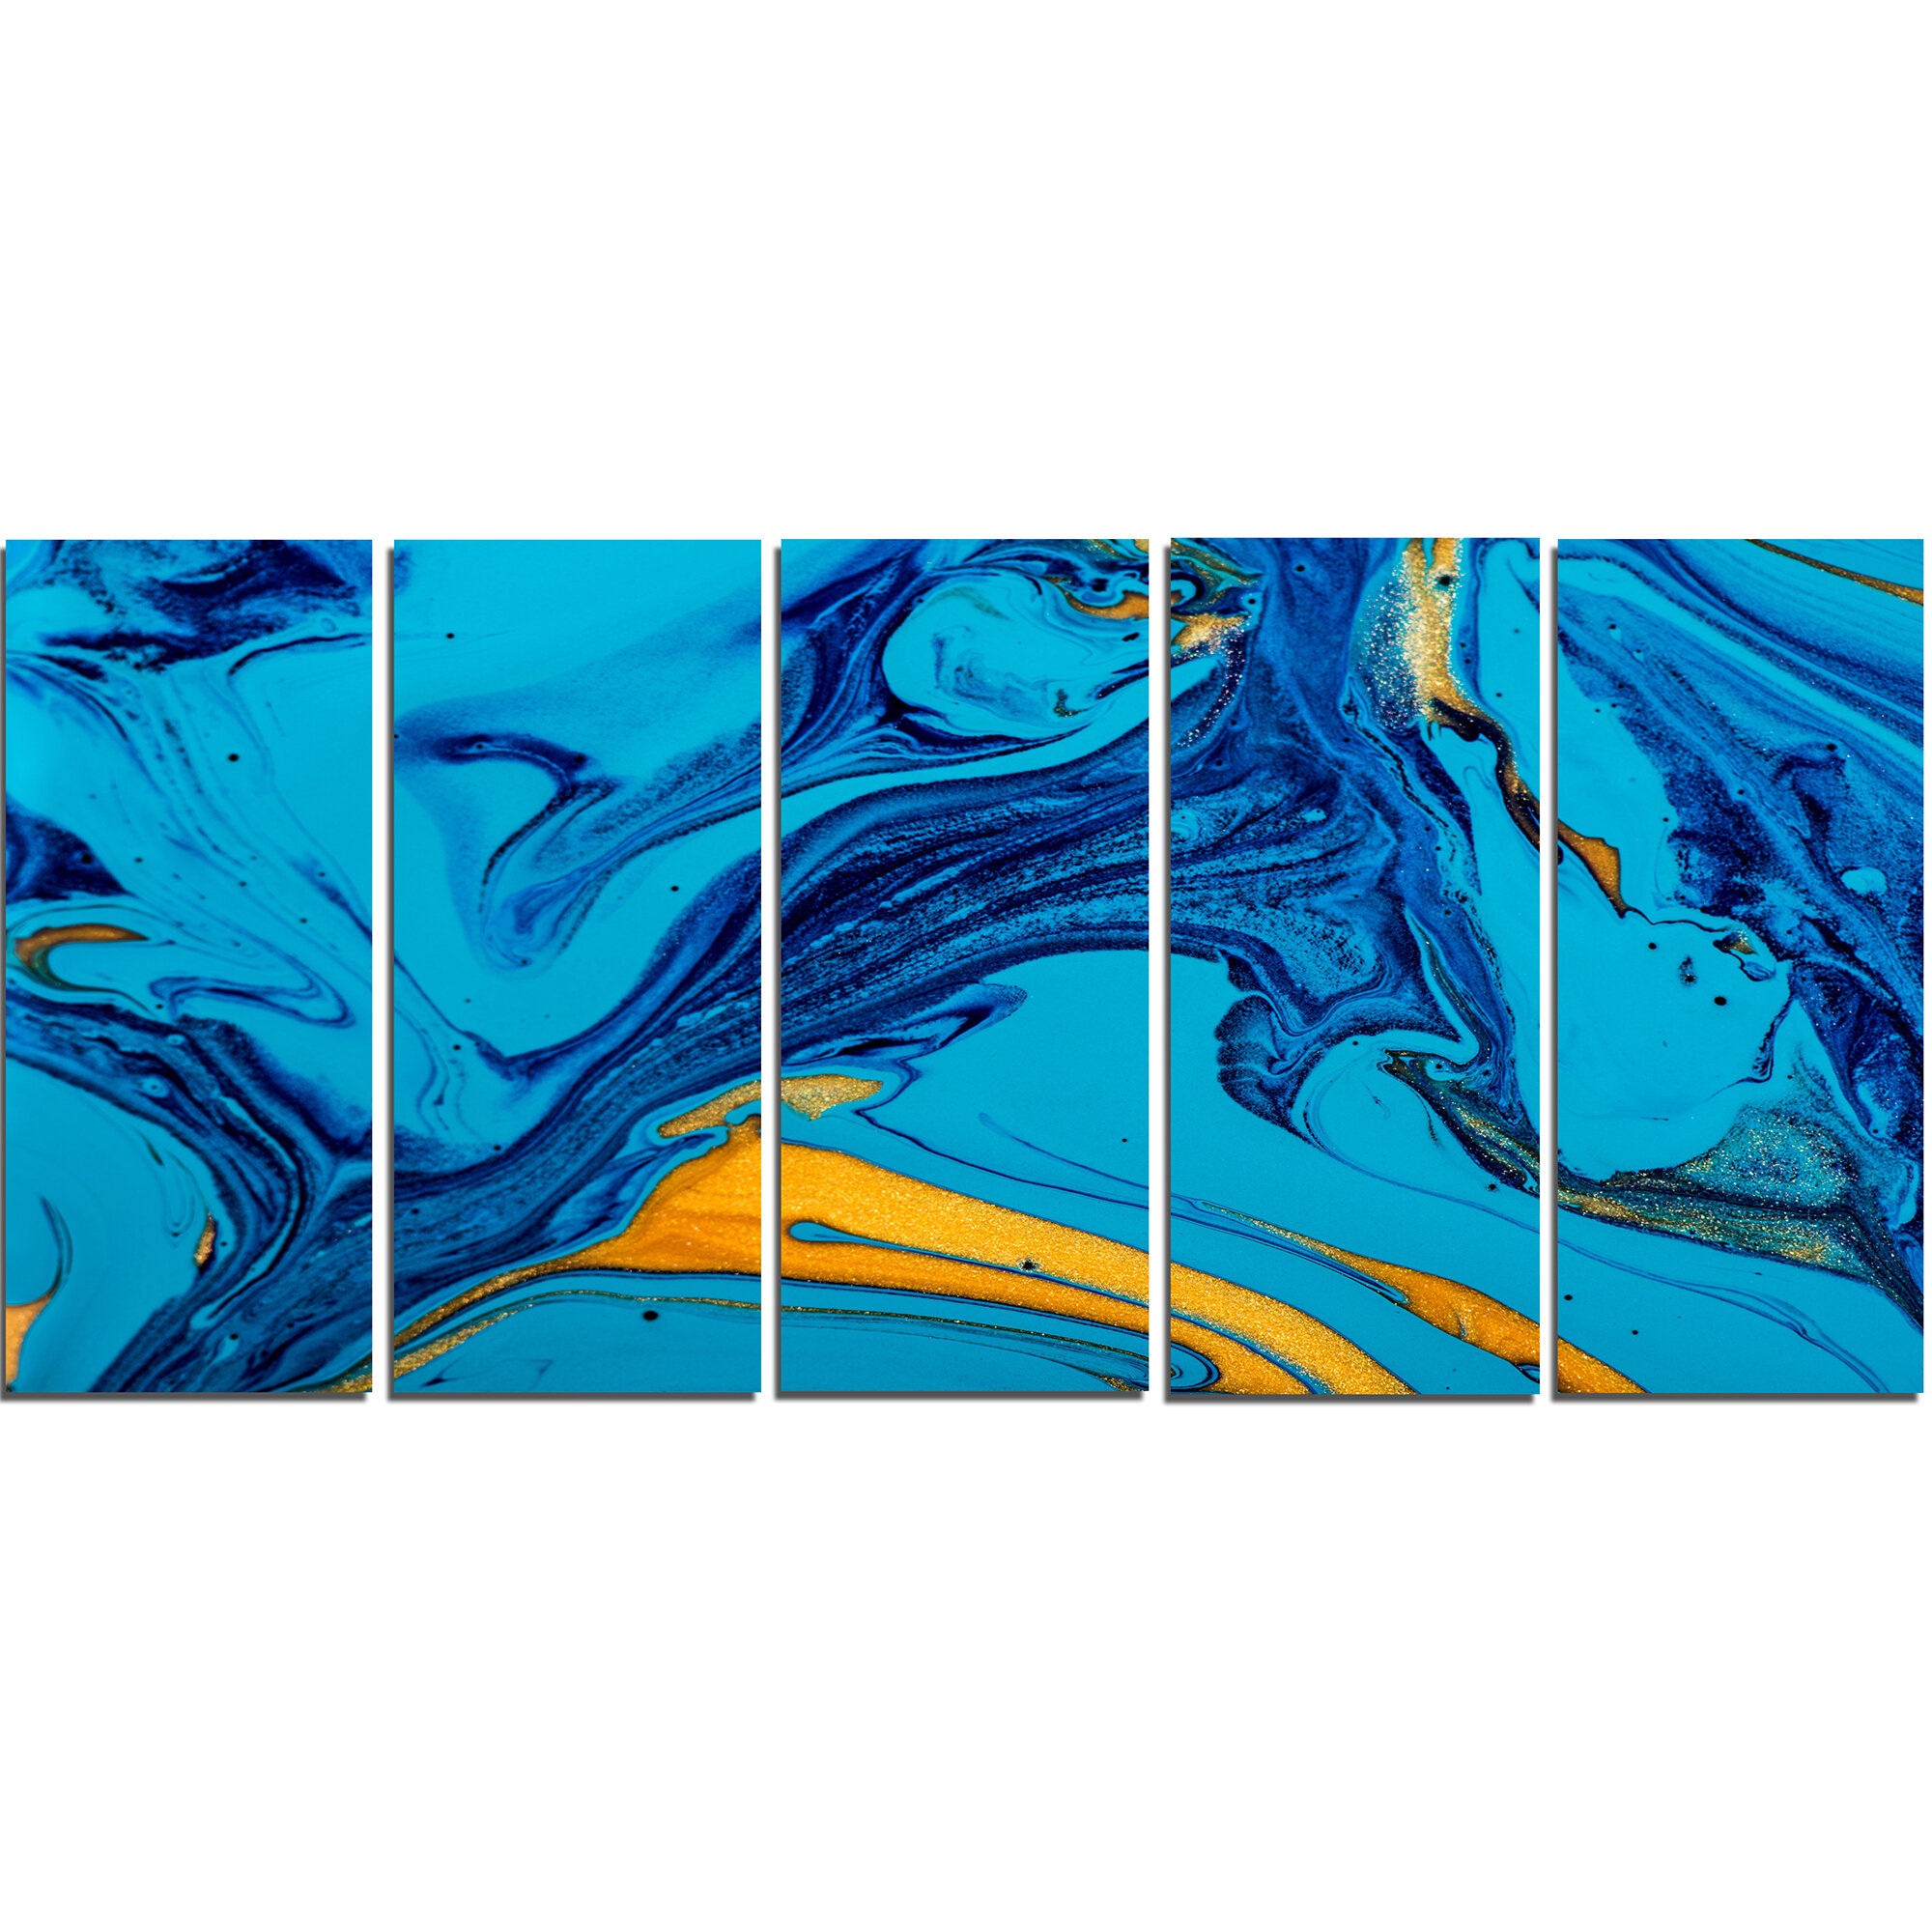 Designart Soft Blue Abstract Acrylic Paint Mix 5 Piece Wall Art On Wrapped Canvas Set Wayfair